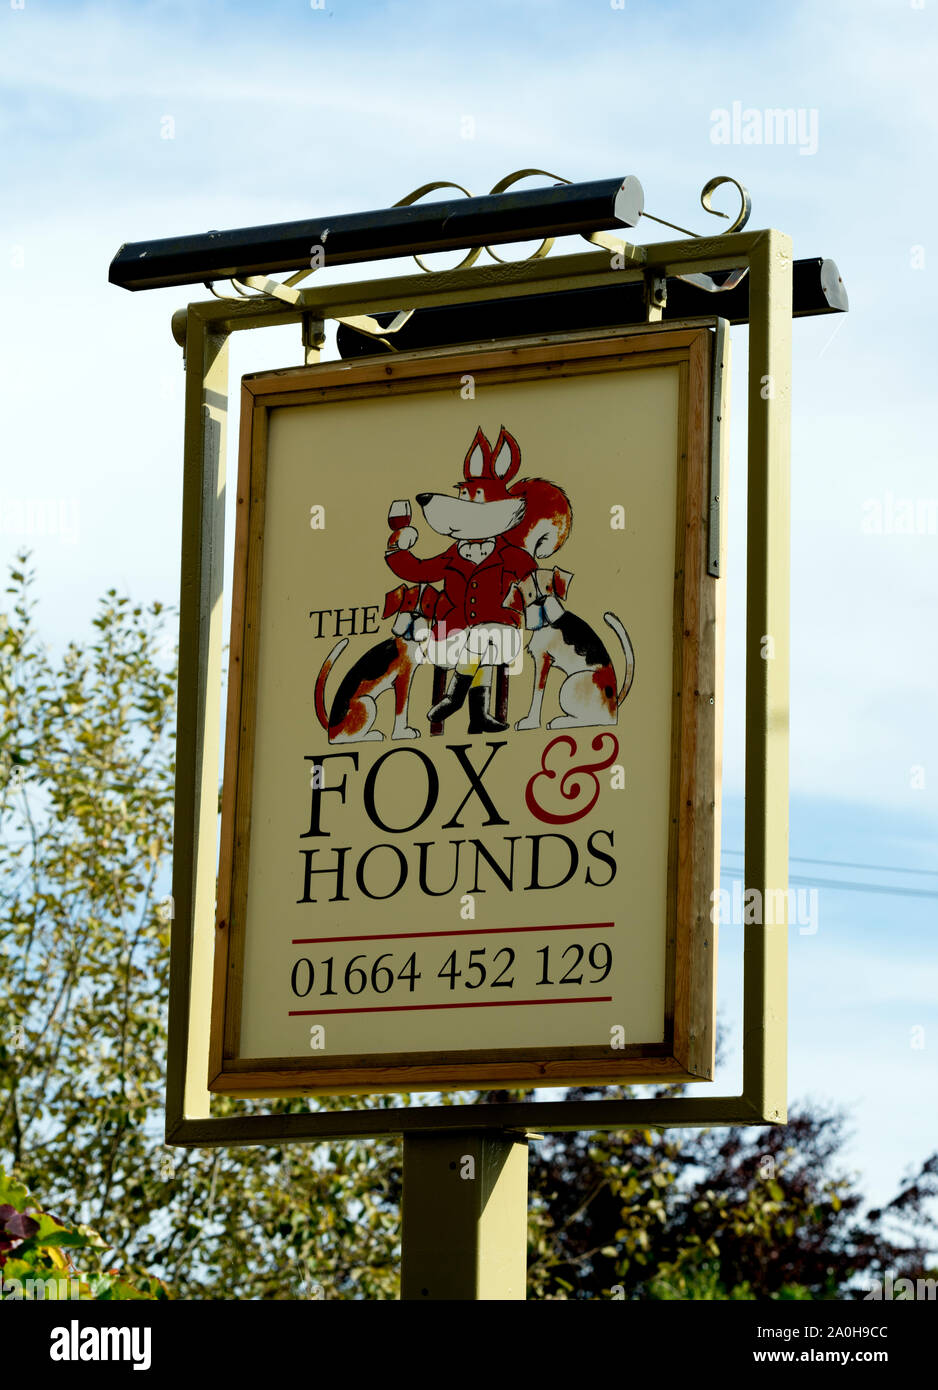 The Fox and Hounds pub, Knossington, Leicestershire, England, UK Stock Photo